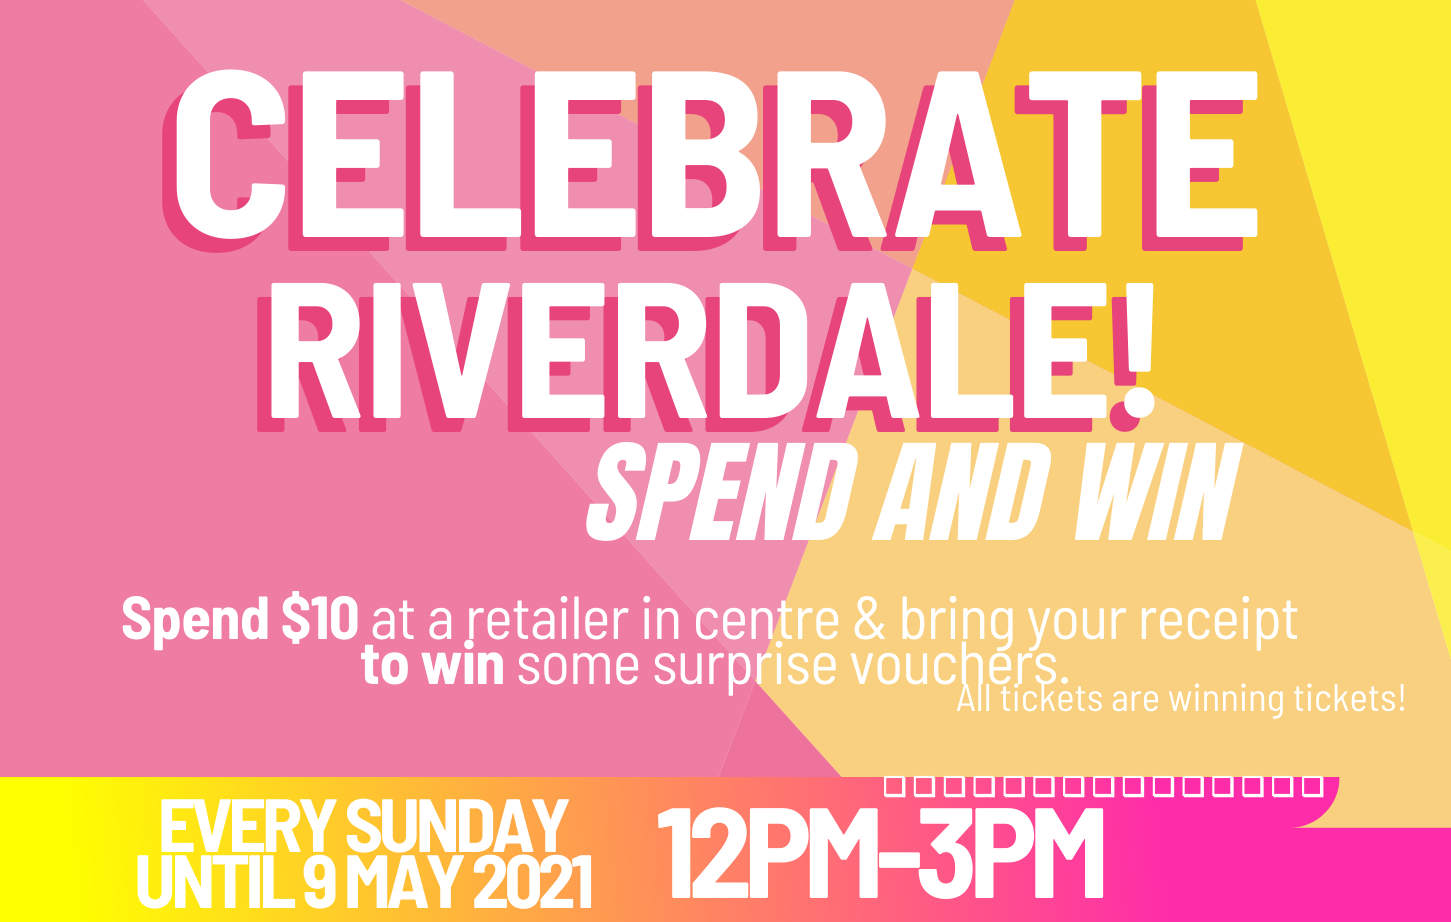 Celebrate Riverdale Spend And Win!